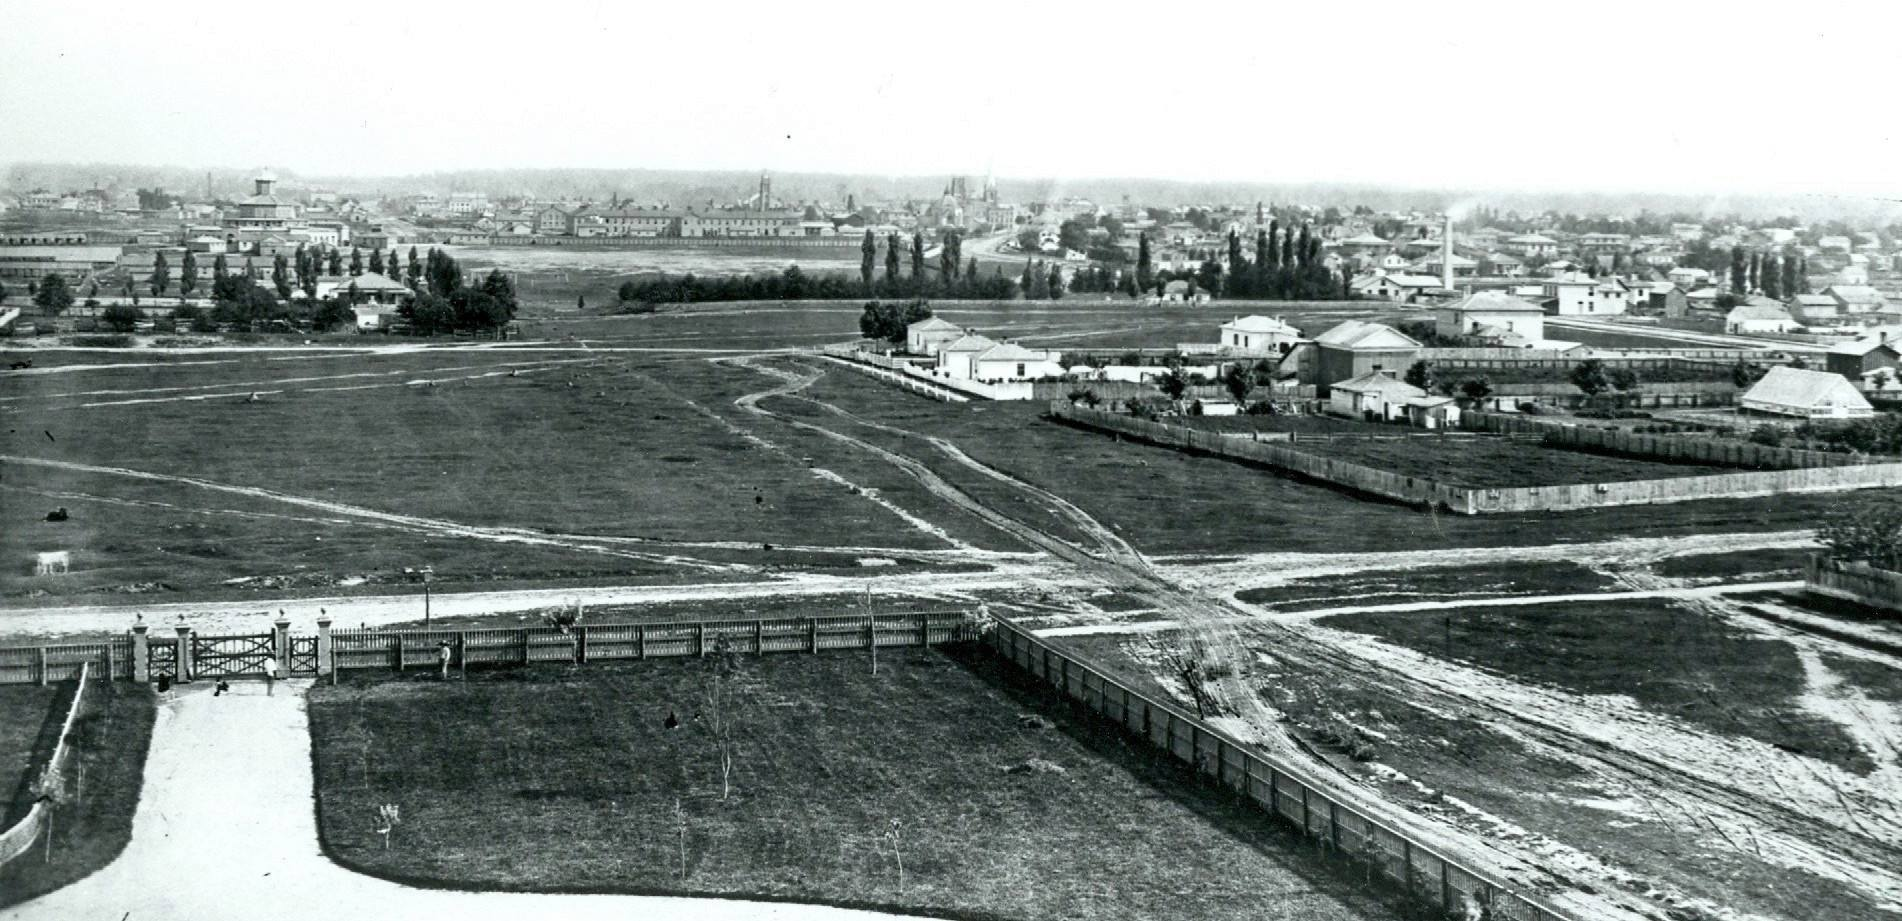 A black and white photo of Old North in 1870s